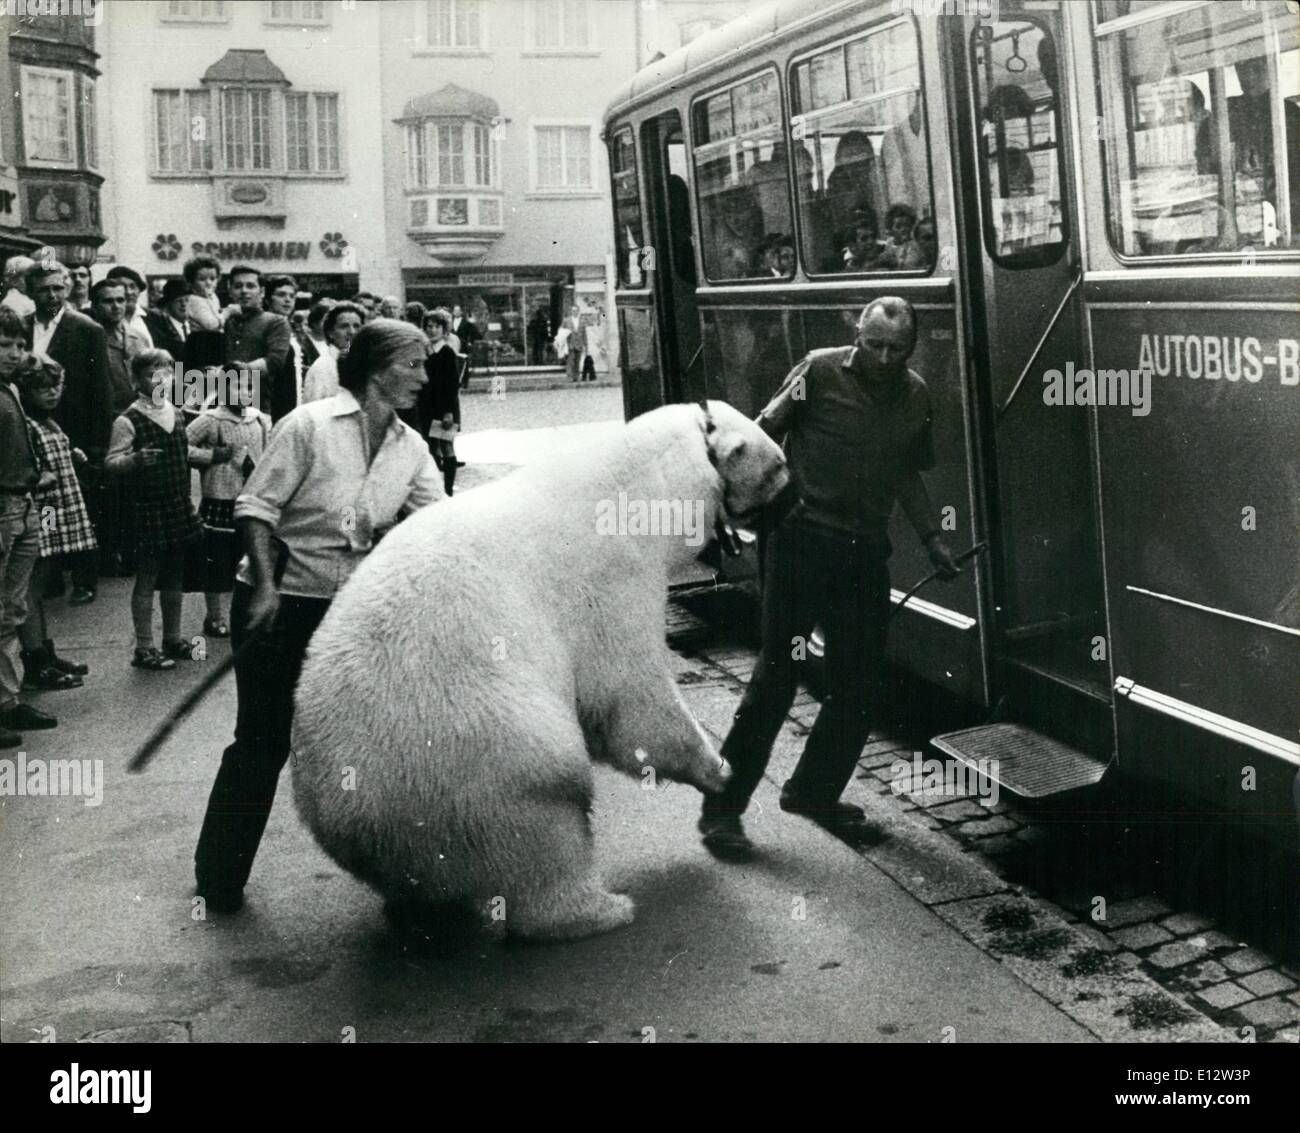 Feb. 25, 2012 - A reluctant passenger: It took a lot of pushing and pulling to get this polar bear onto the bus at Schaffhausan, Switzerland. The passengers did not find its presence unbearable. - Stock Image